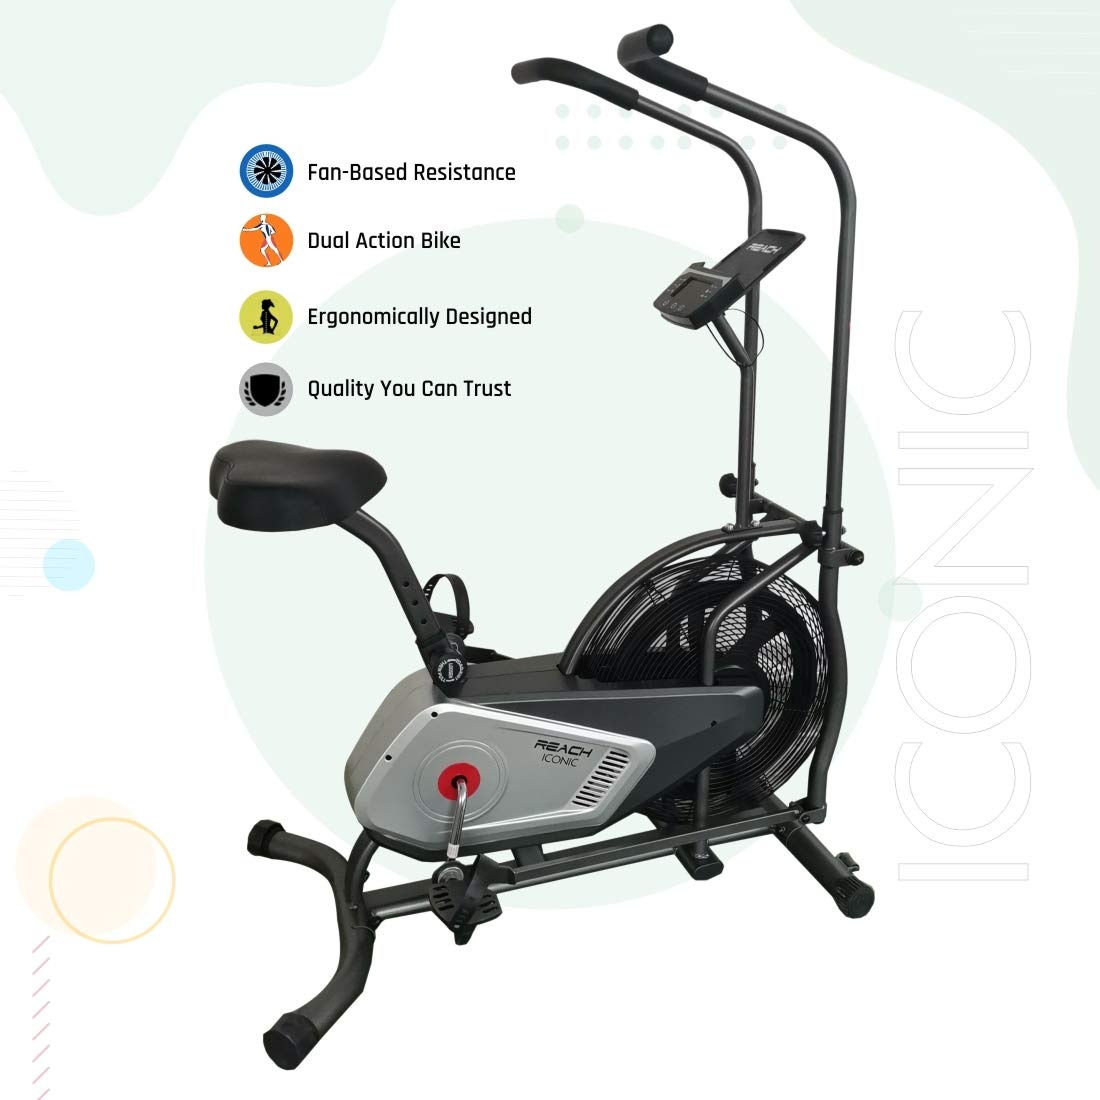 Reach Iconic Air Bike Exercise Gym Cycle with Fan Based Resistance